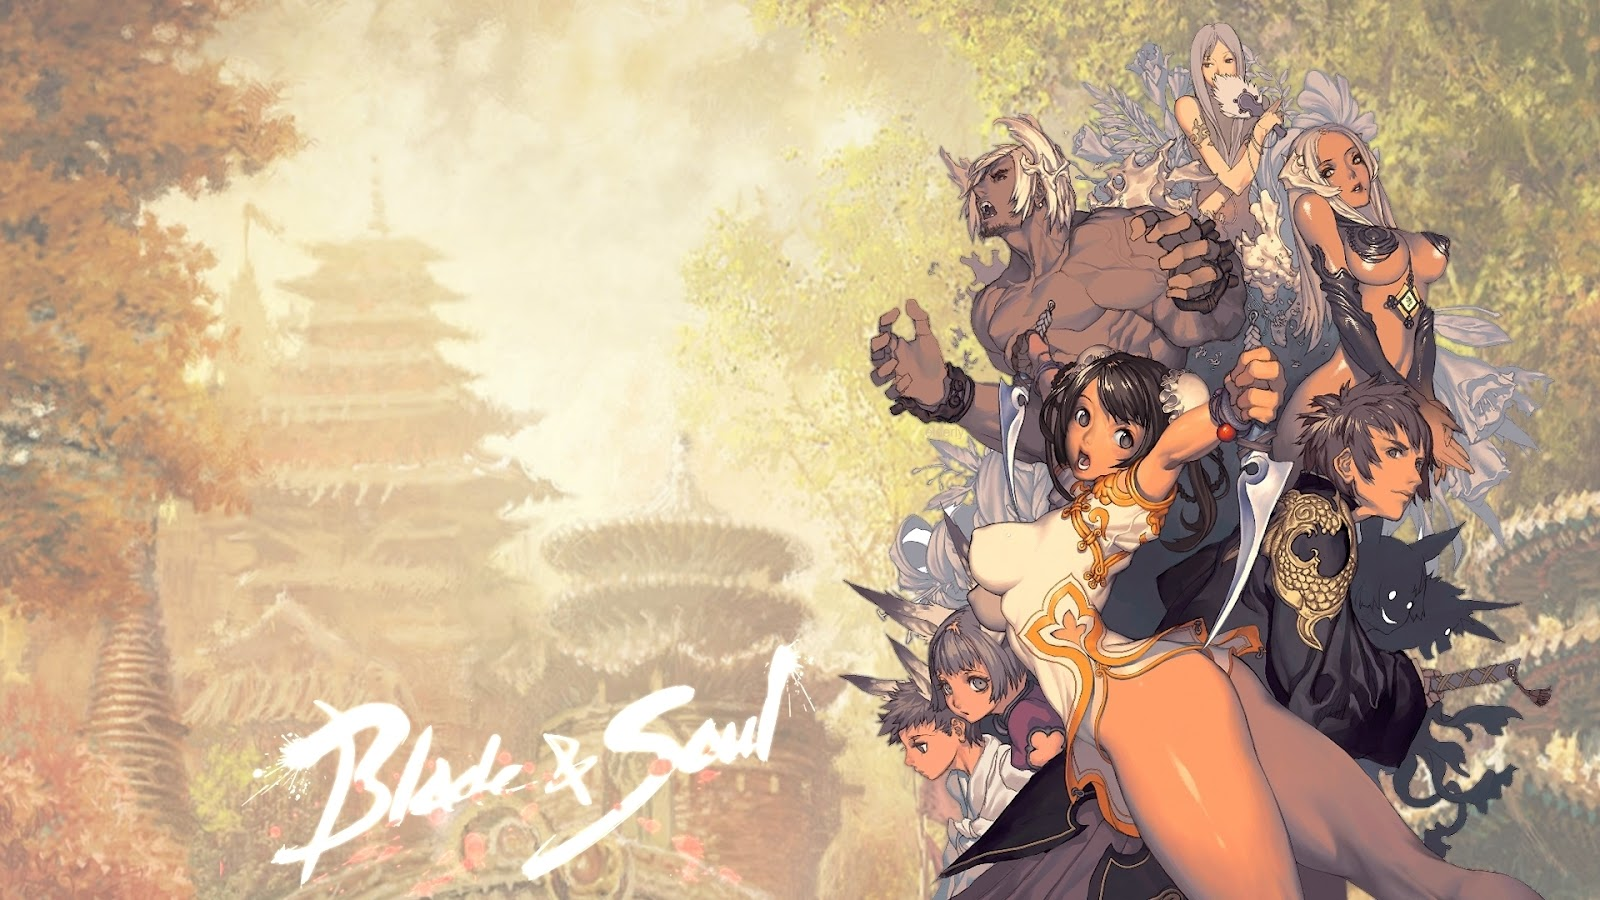 Blade and Soul Wallpapers NickWallpapercom HD Desktop 1600x900